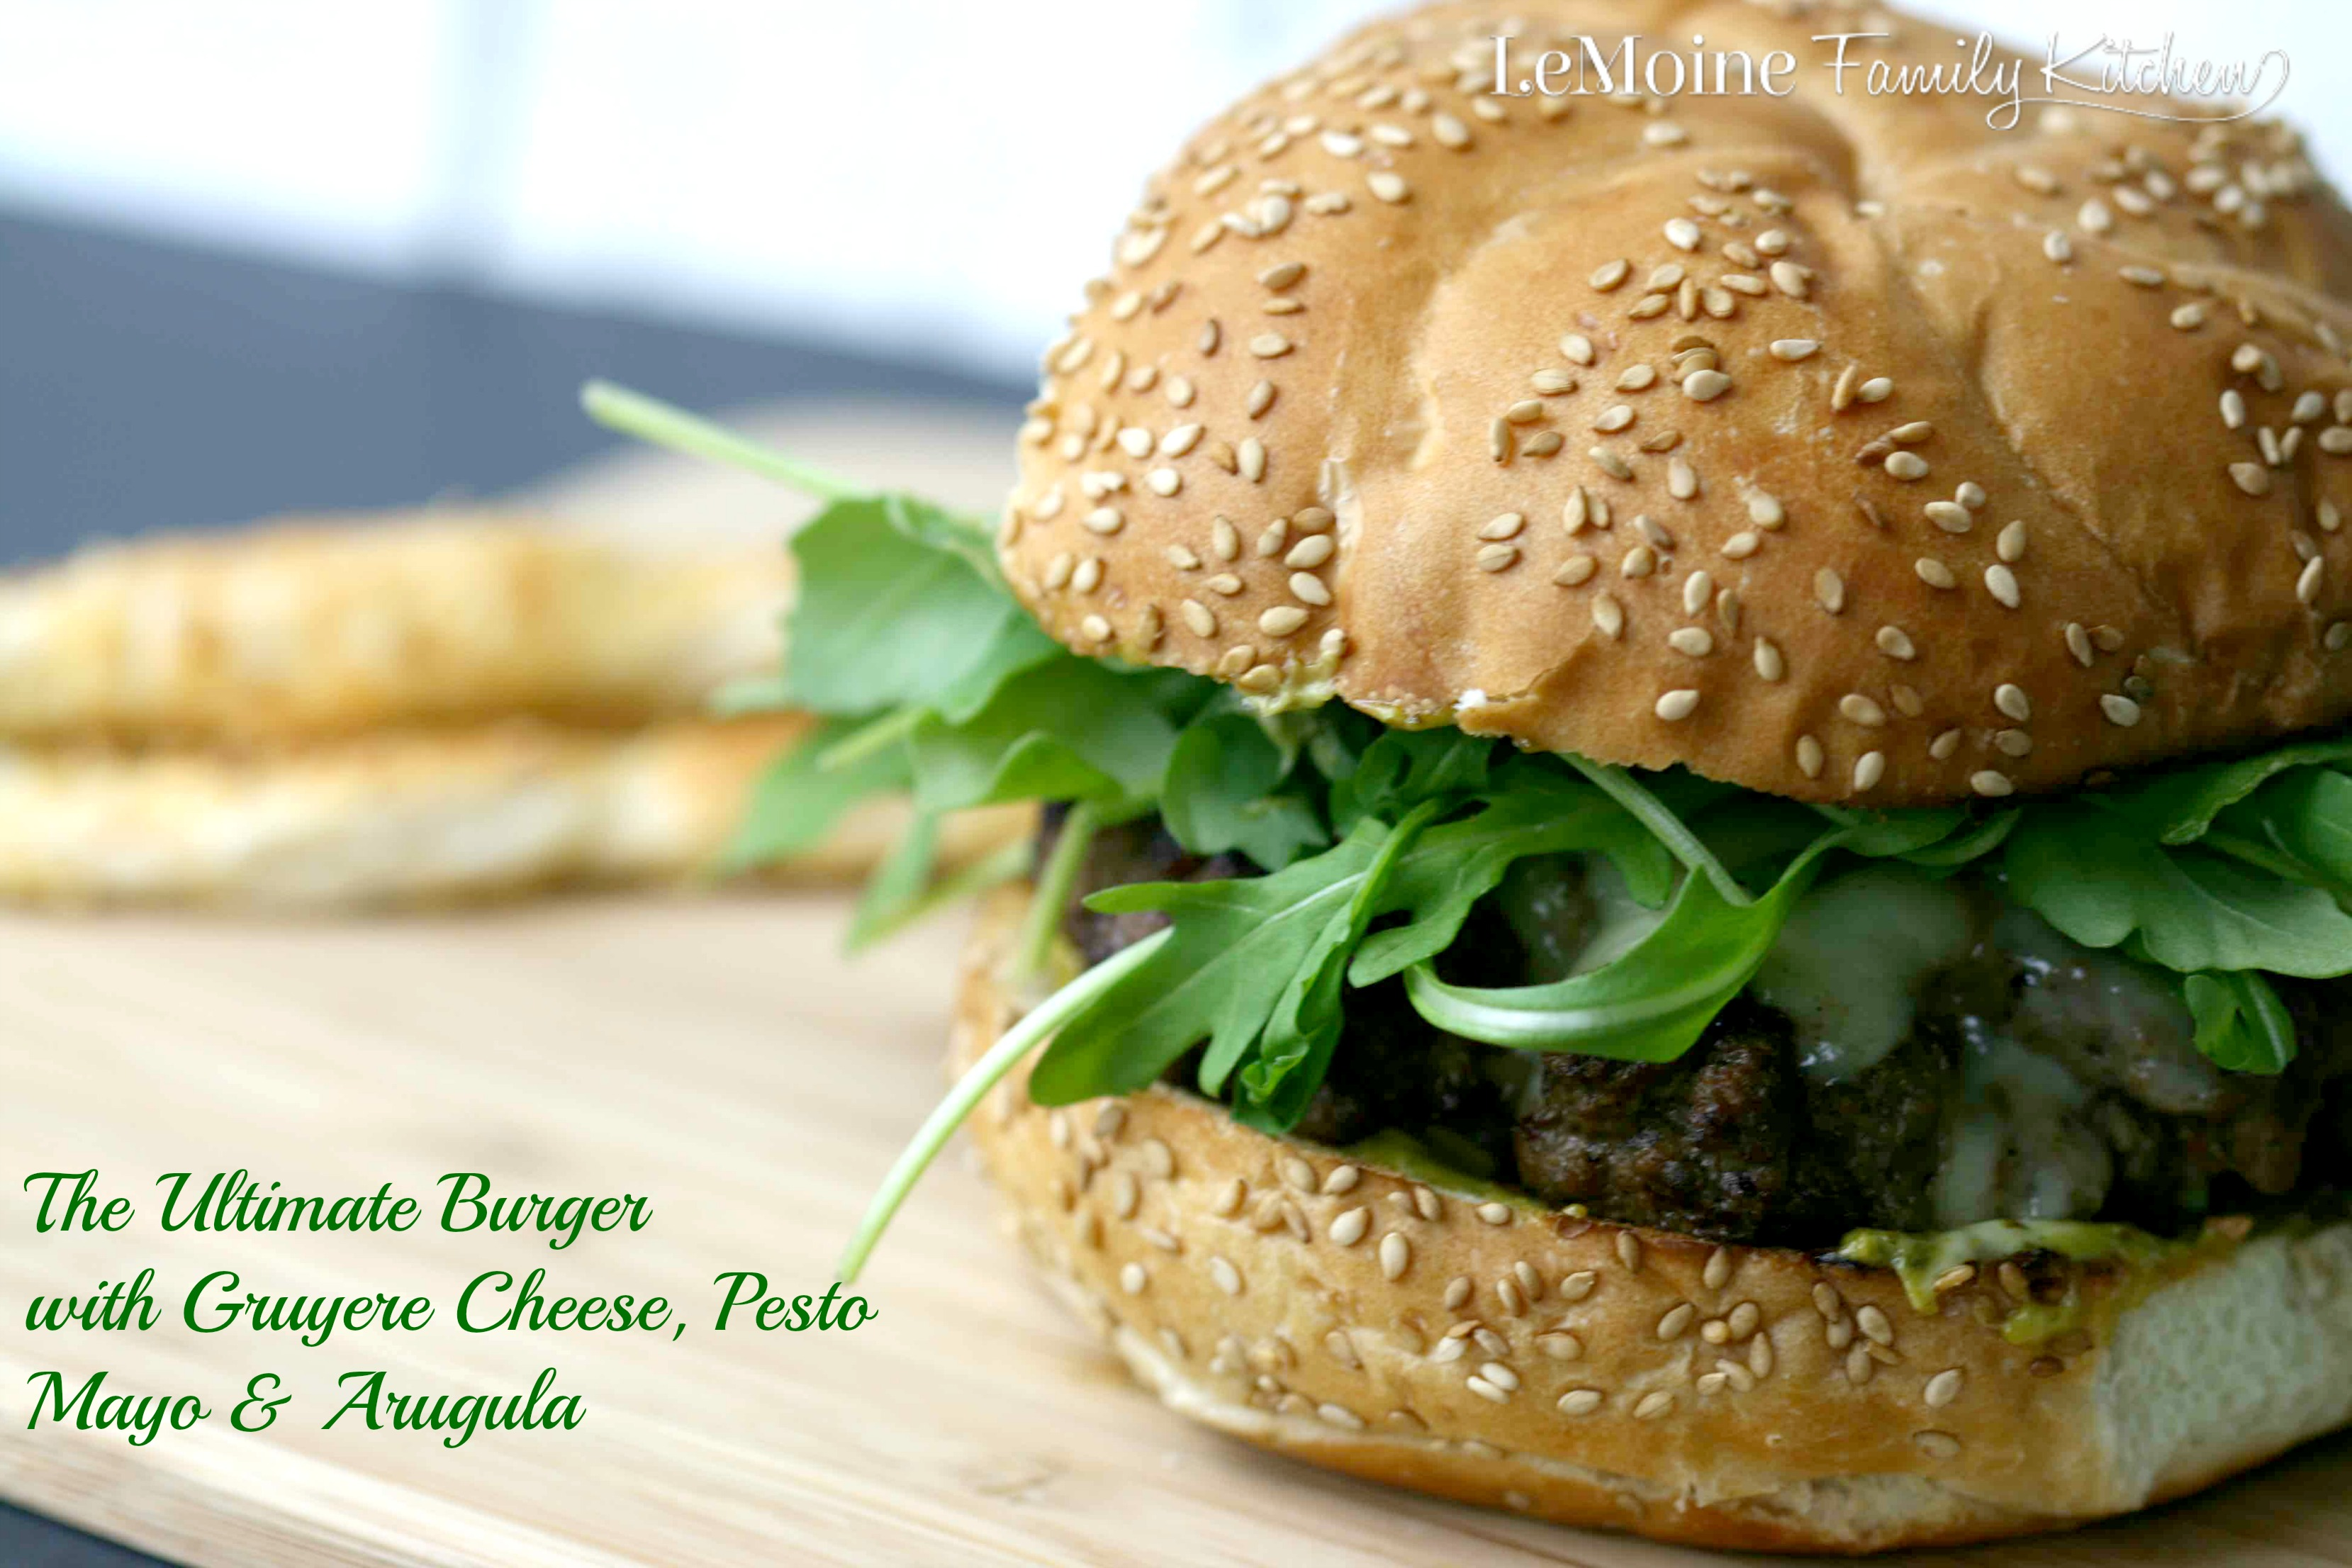 The Ultimate Burger with Gruyere Cheese, Pesto Mayo & Arugula